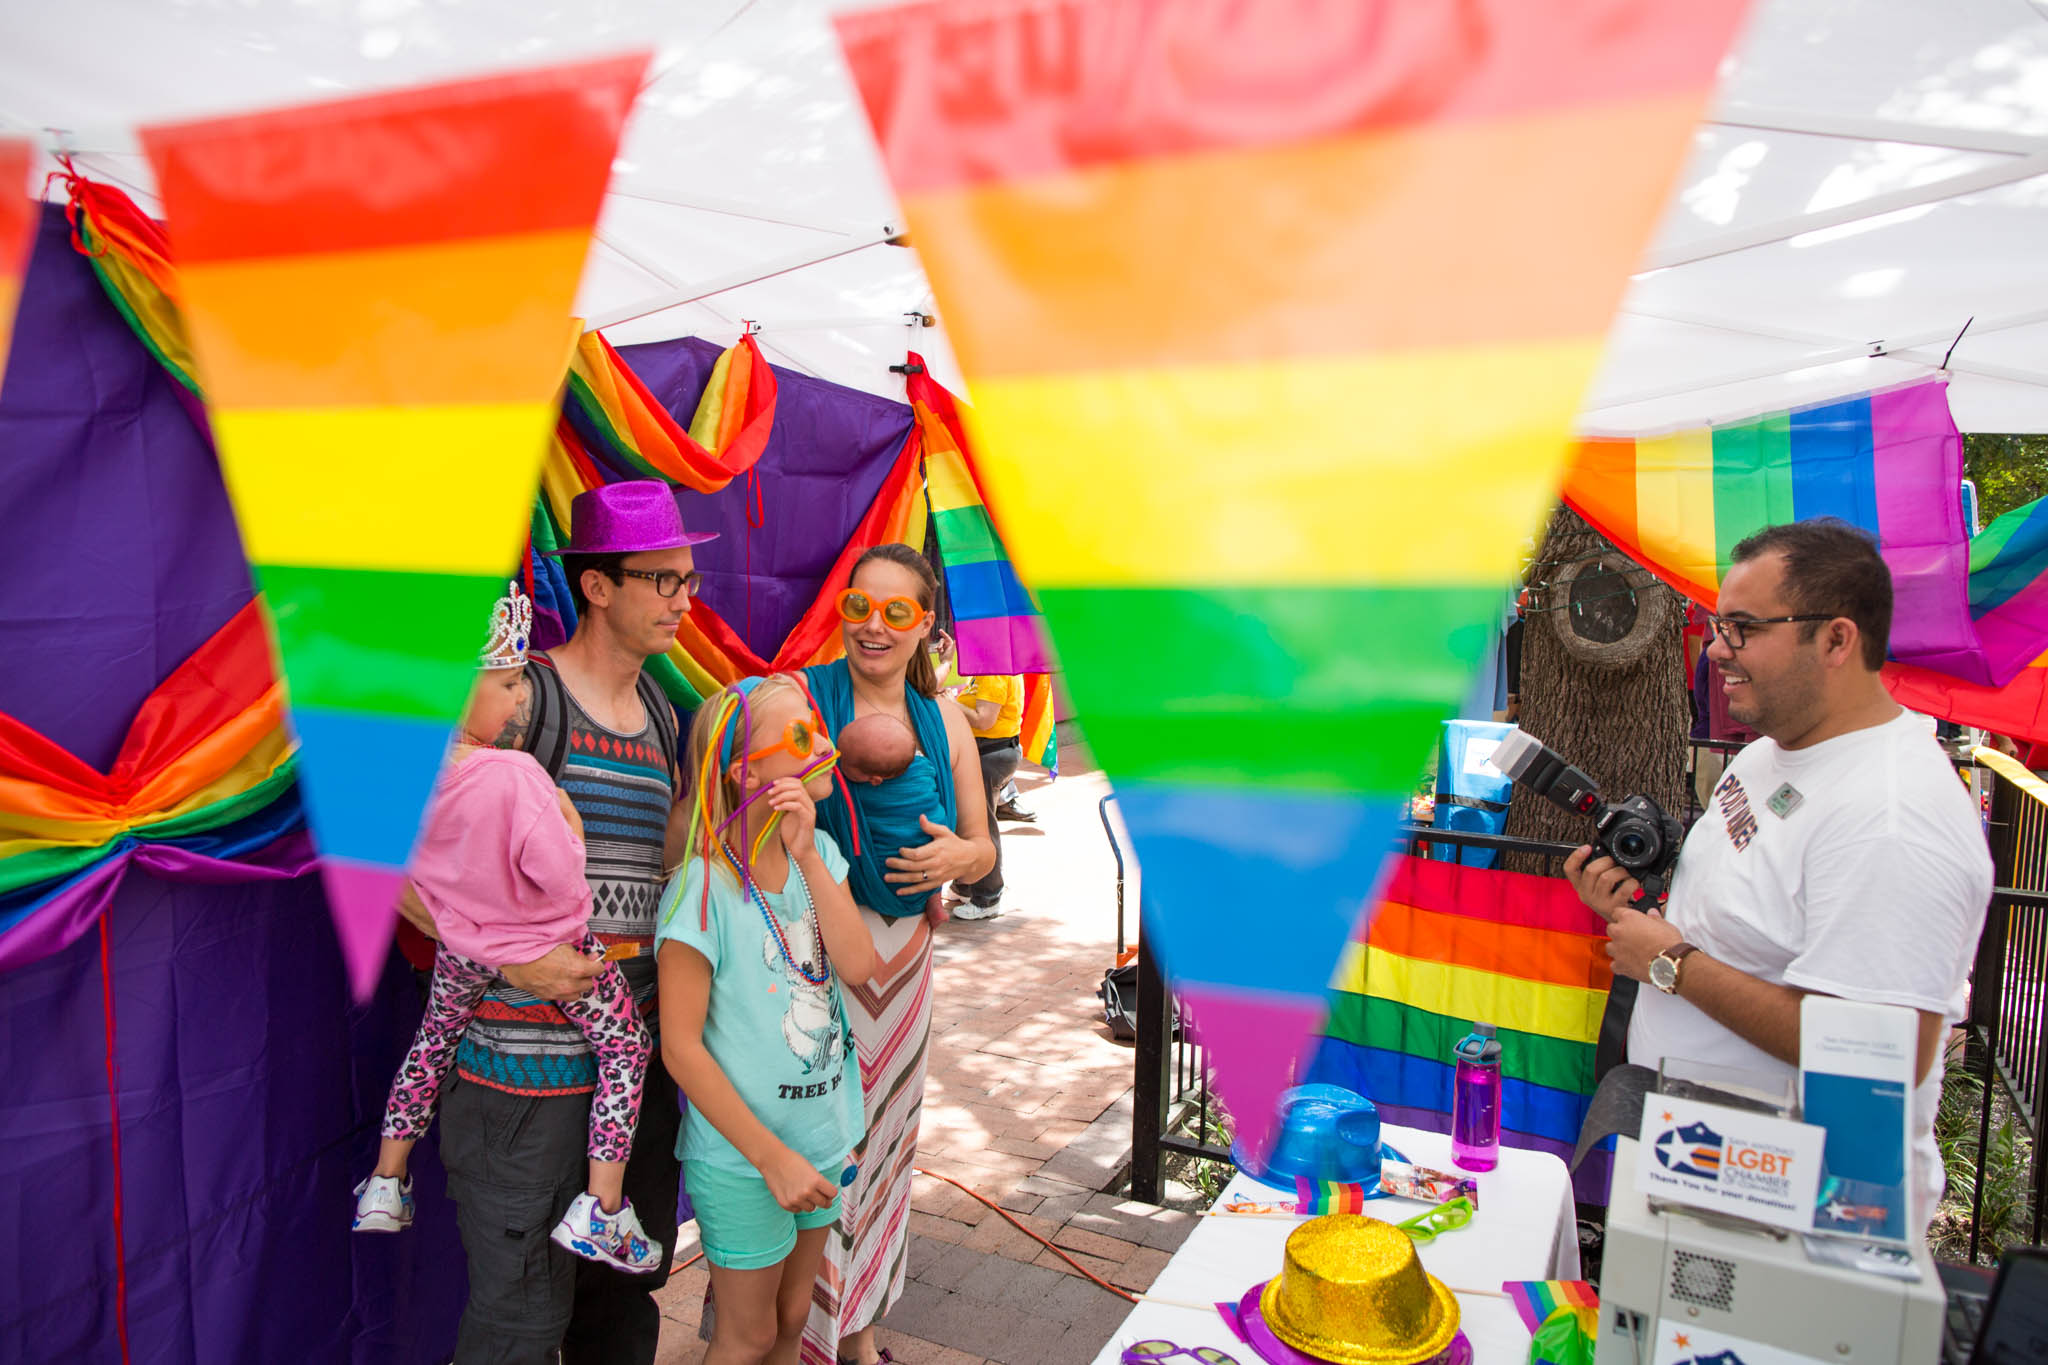 A family poses for a photo during the Family Pride Fair. Photo by Michael Cirlos.